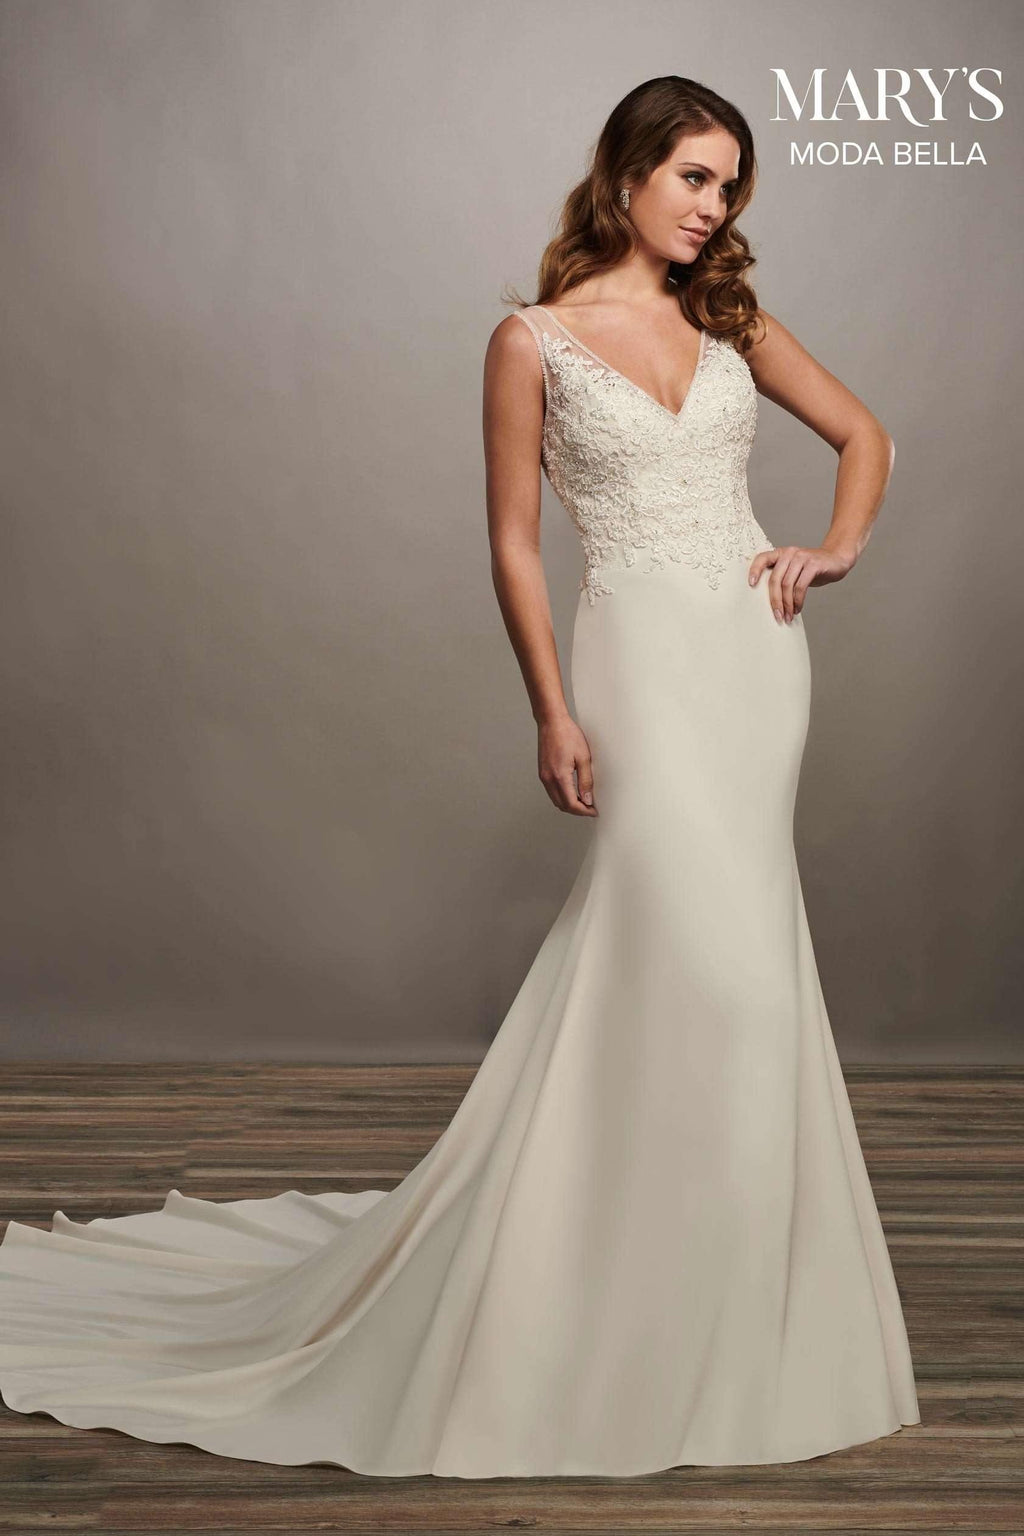 MARY'S BRIDAL - Jillian - Adore Bridal and Occasion Wear